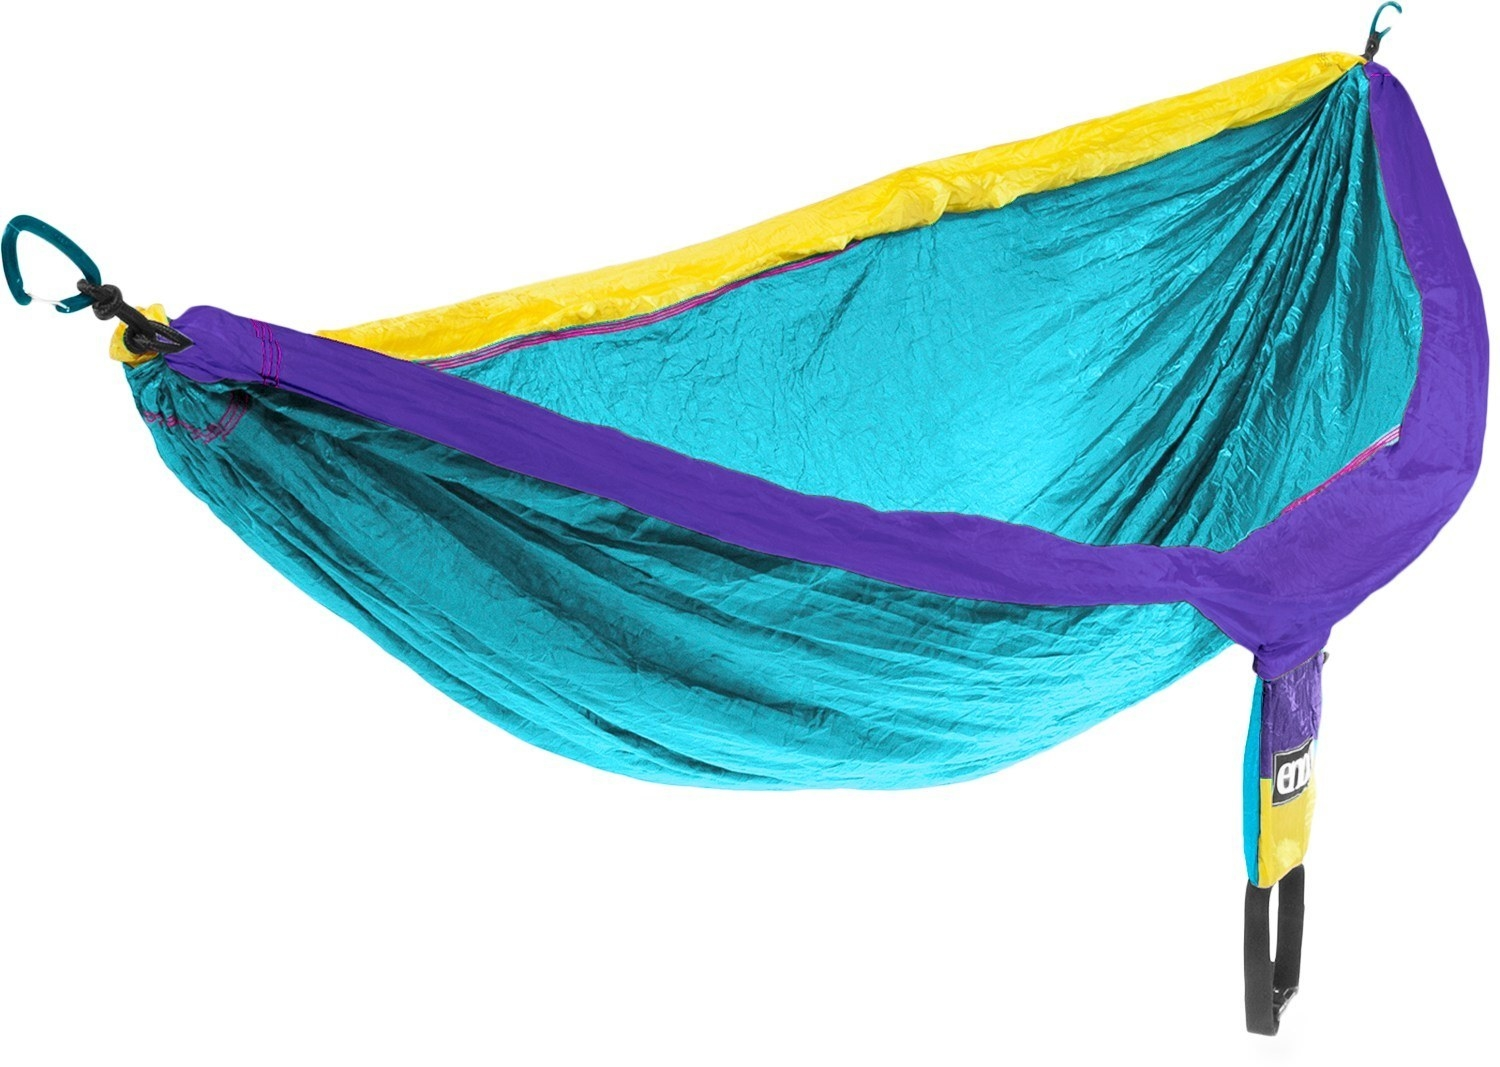 The hammock in the blue, yellow, and purple colorway